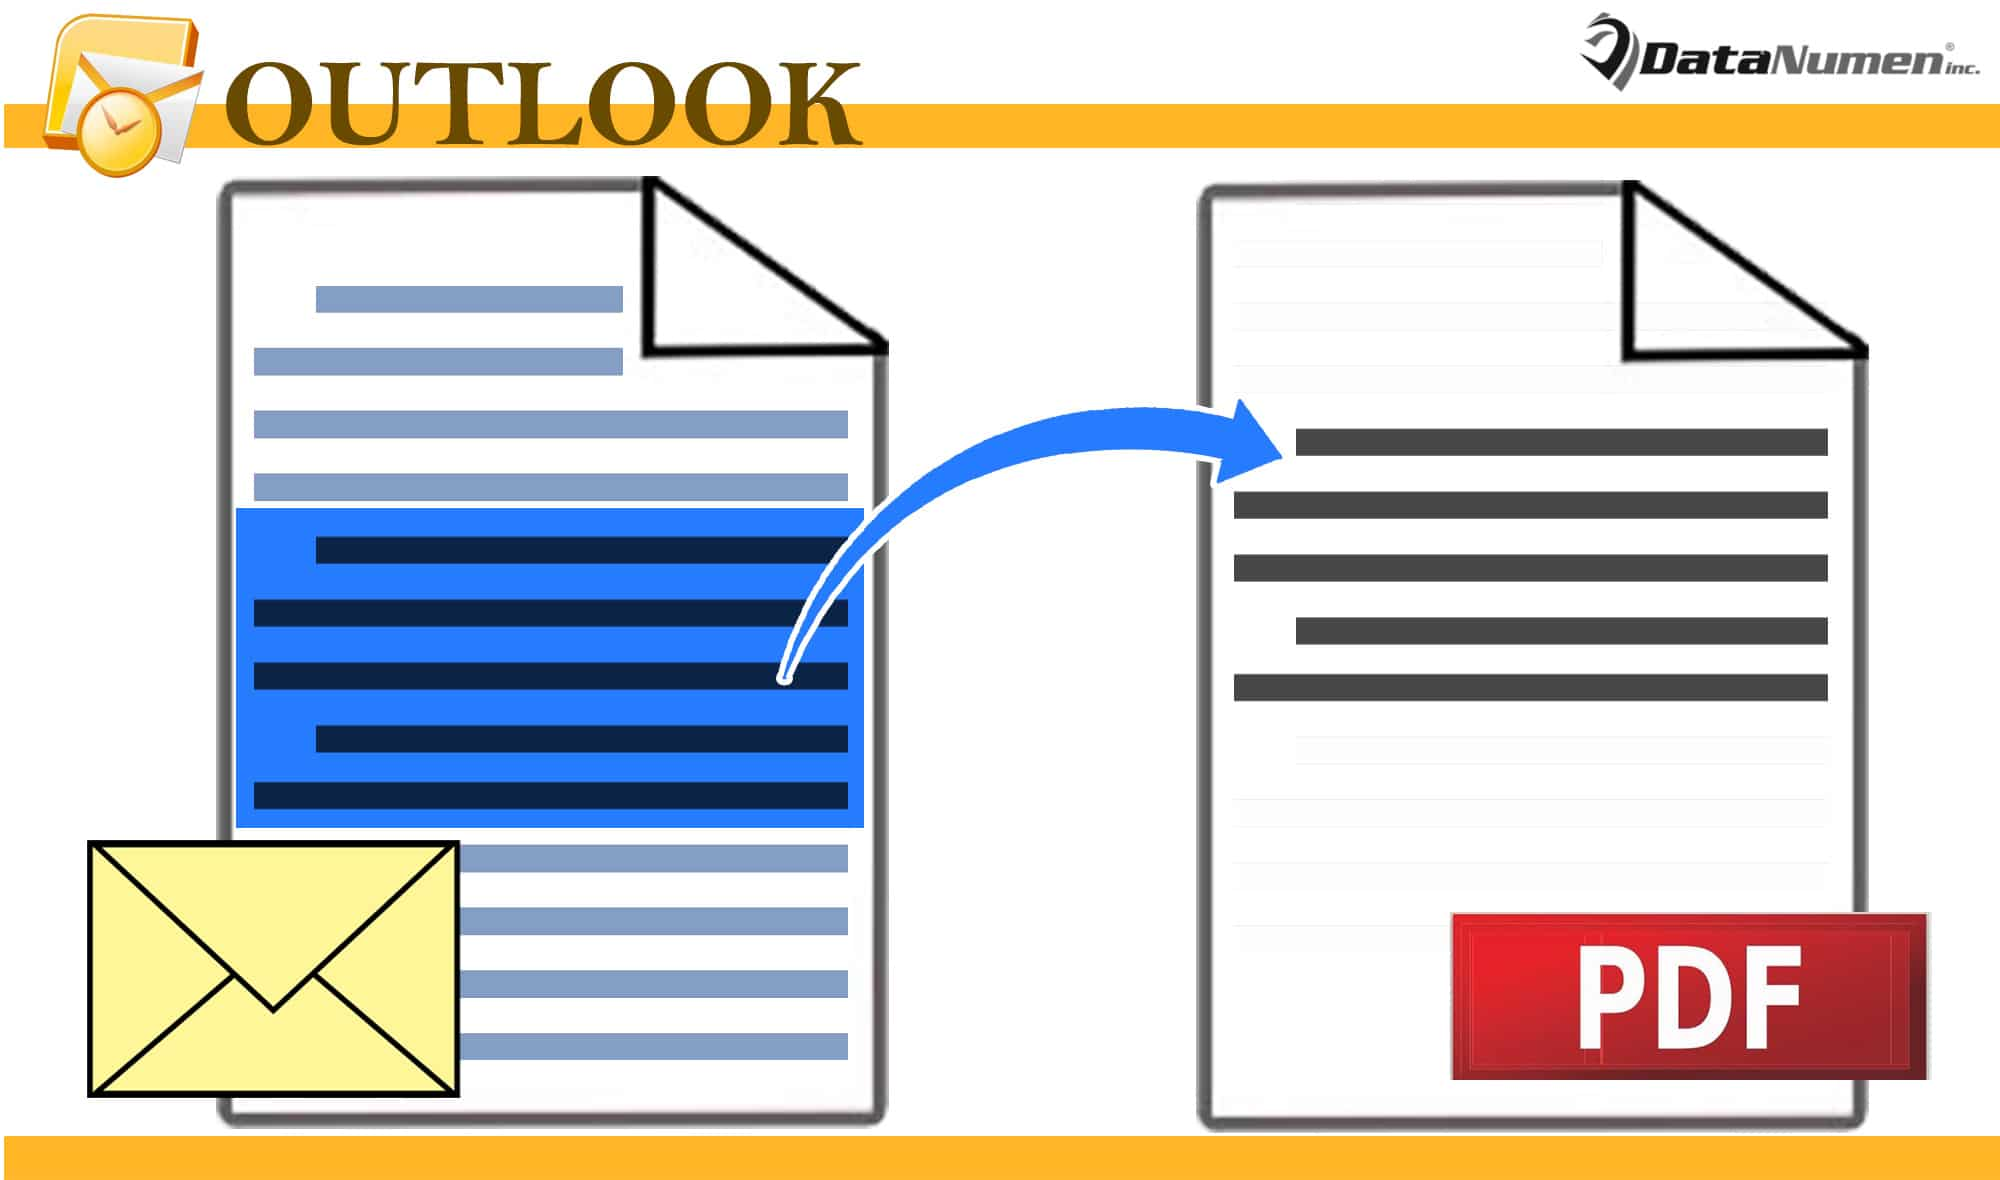 Quickly Export Part of an Outlook Email as a PDF File